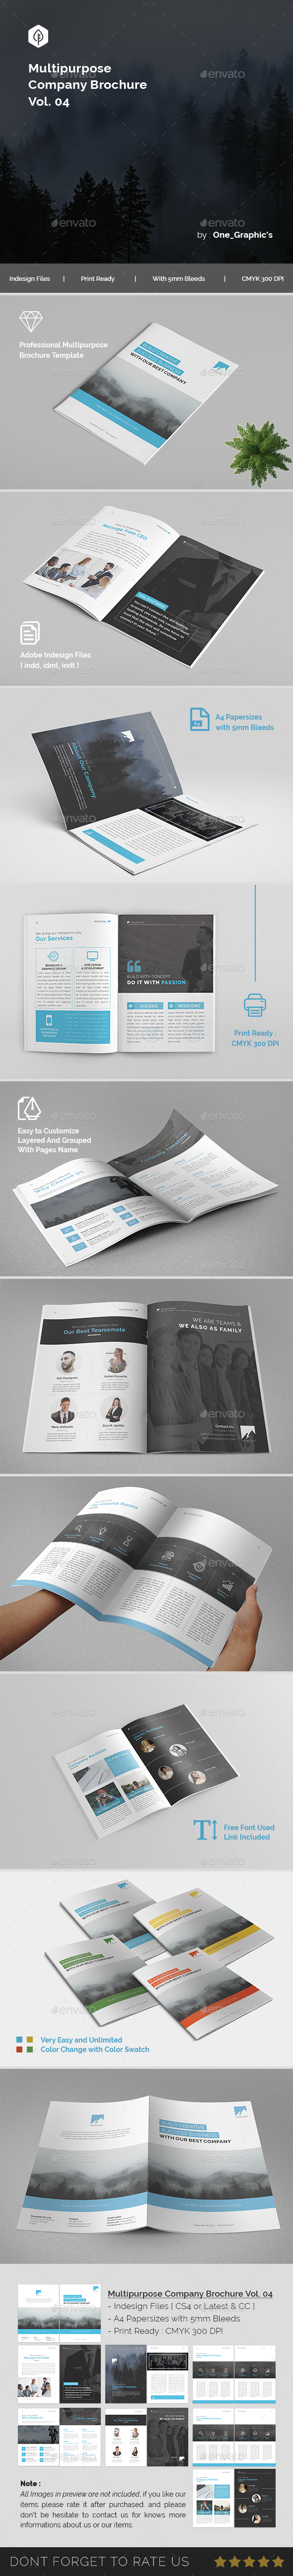 GraphicRiver Multipurpose Company Brochure Template Vol 04 21039894